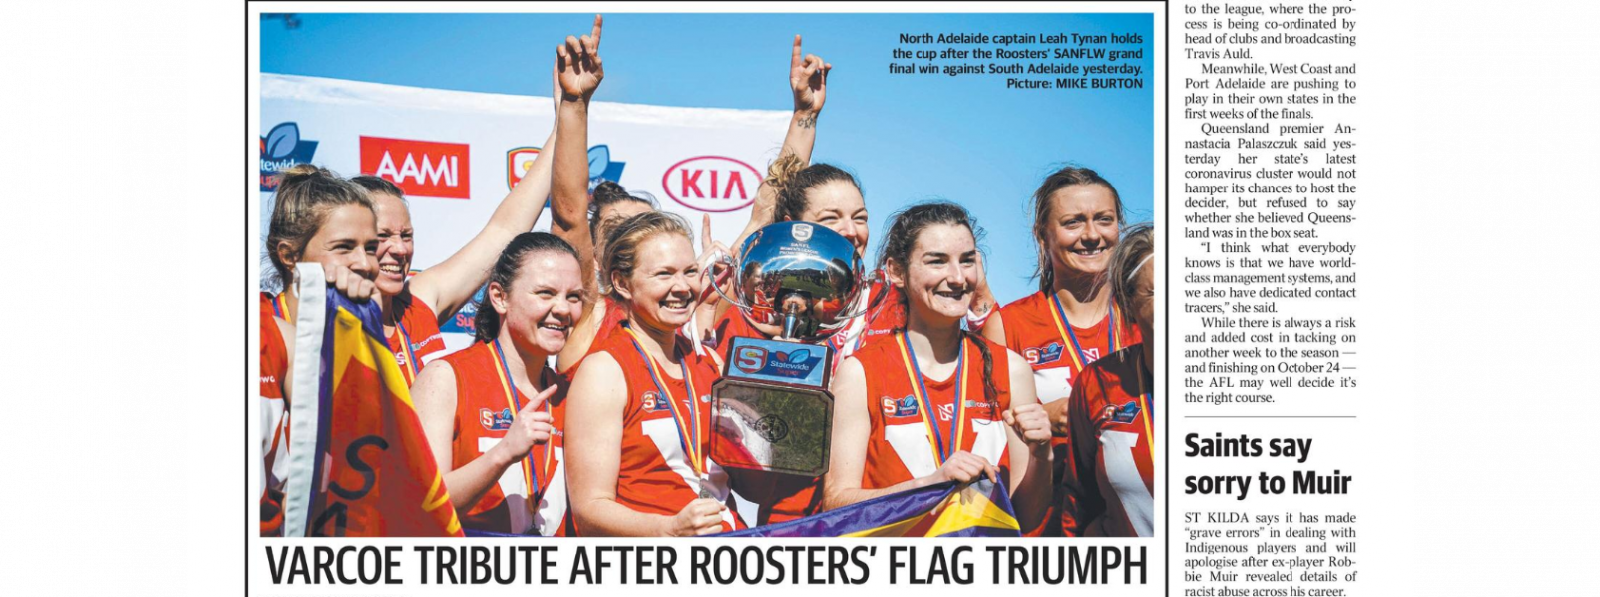 Clipping from The Advertiser, 24 August 2020